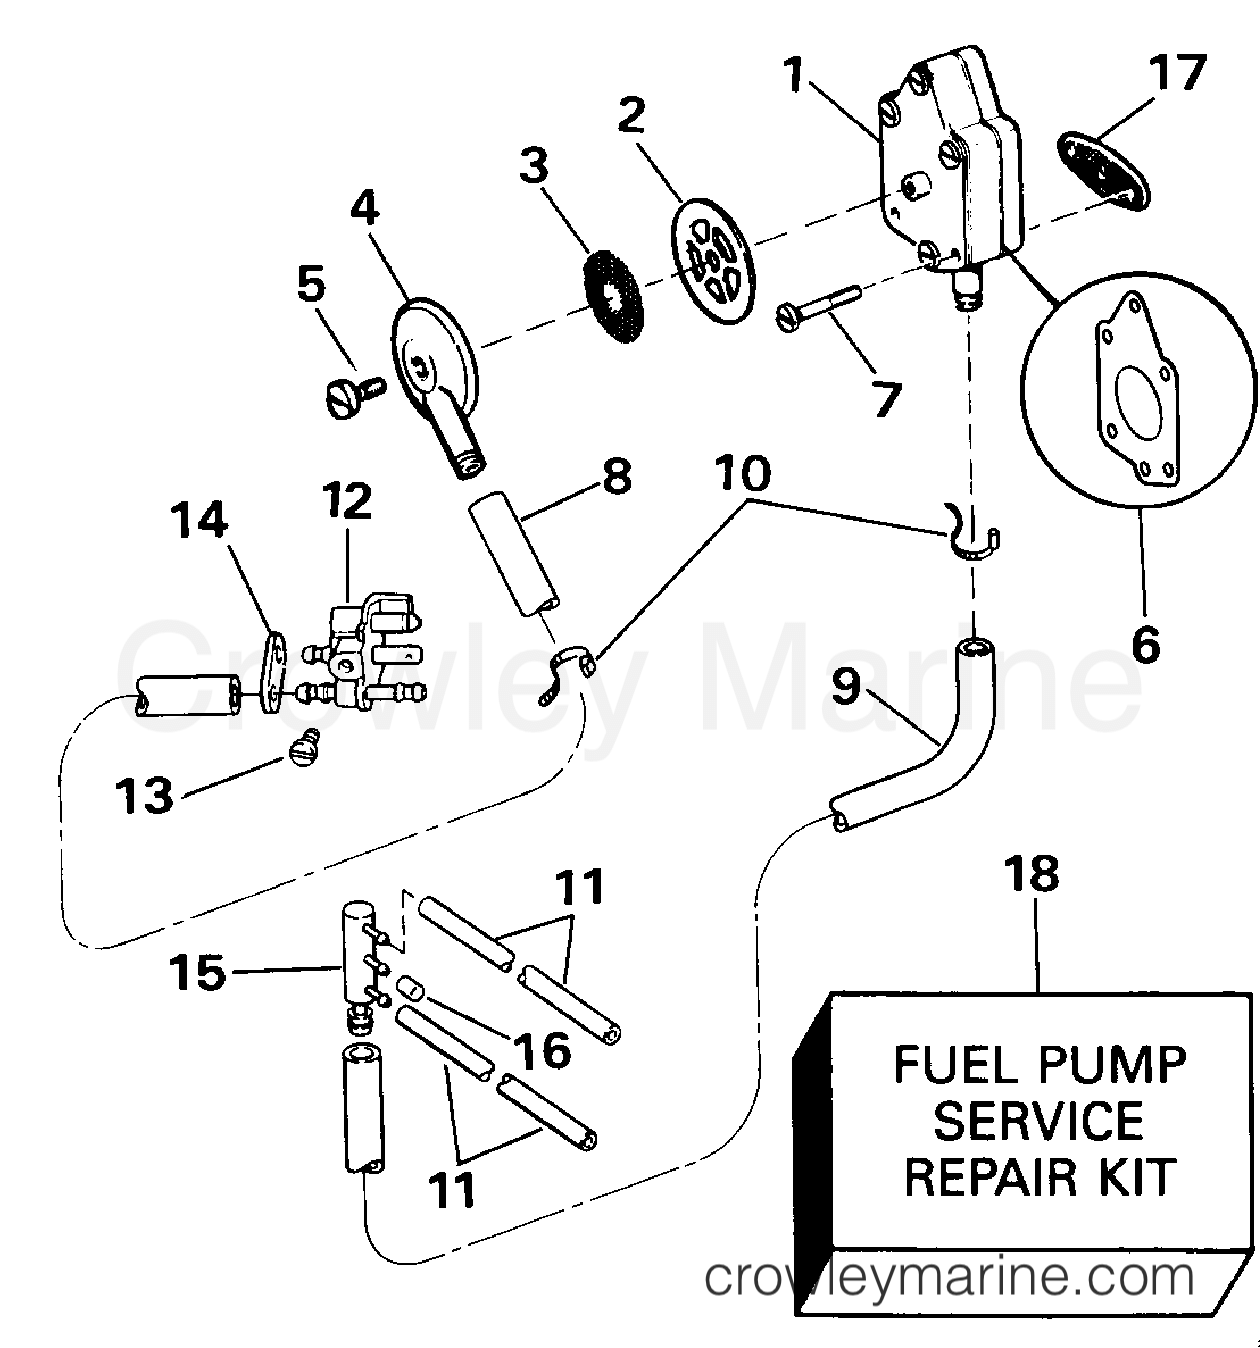 Fuel Pump And Filter Early Production